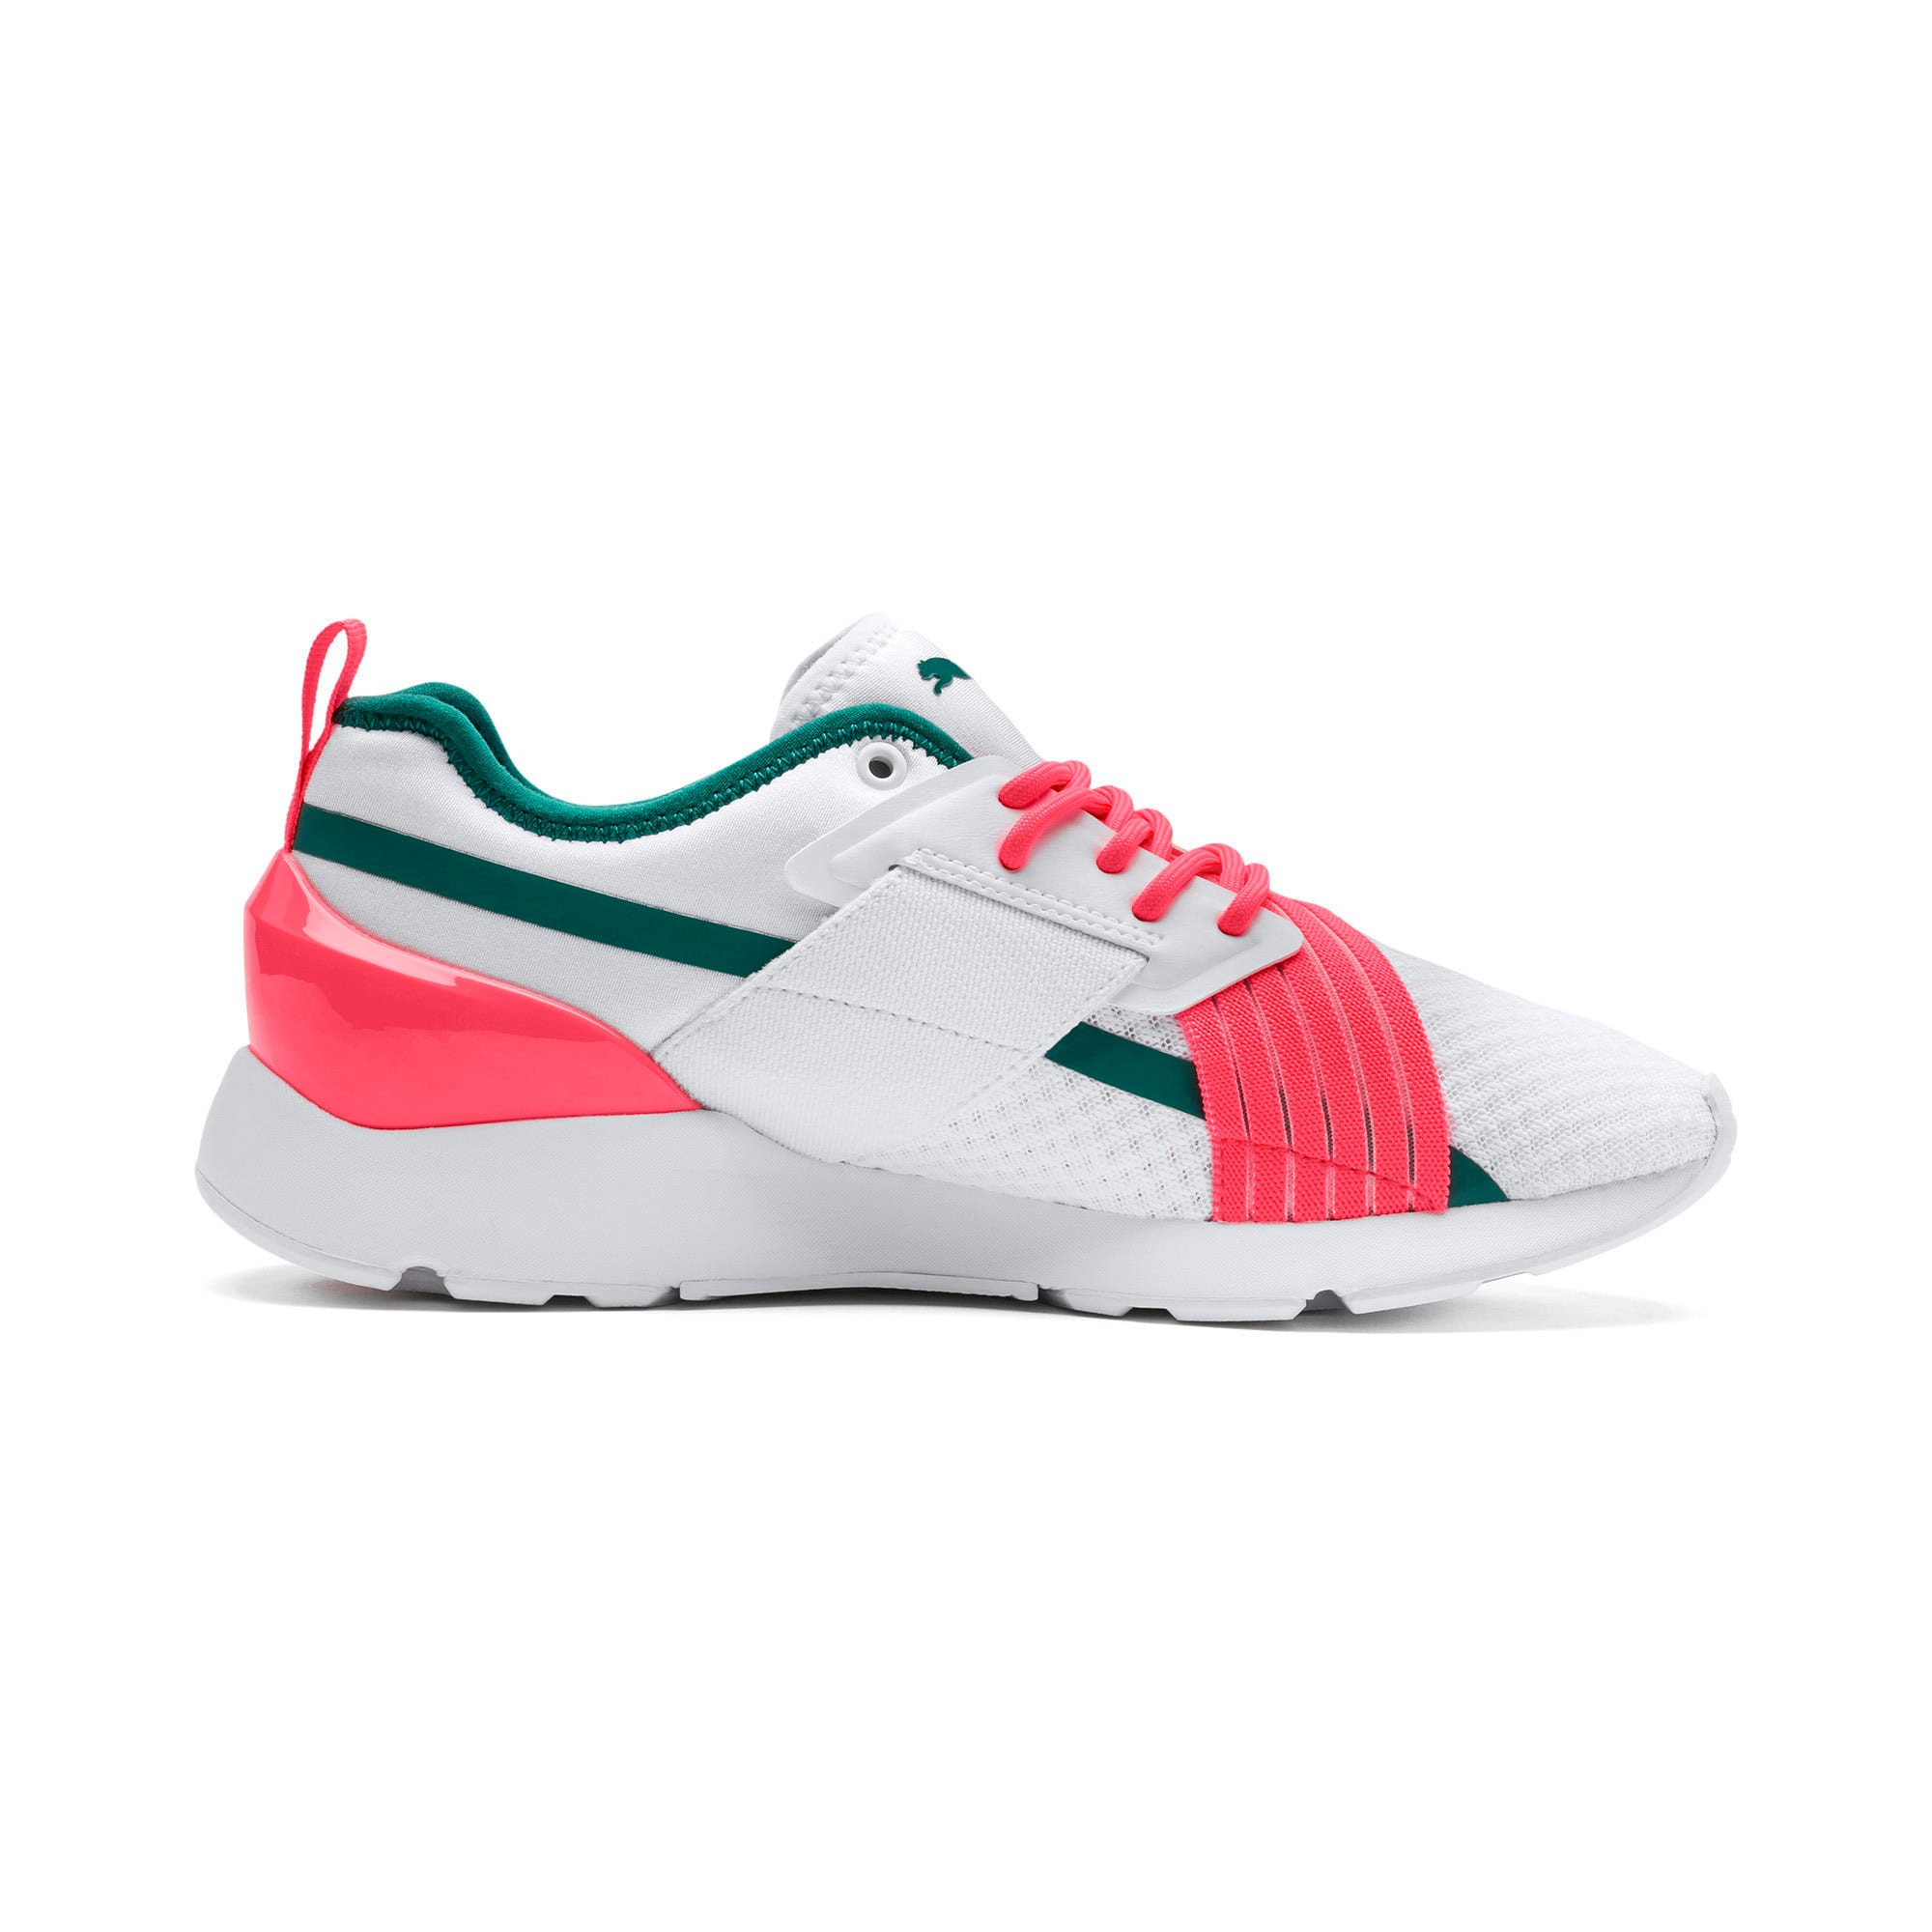 Thumbnail 5 of Muse X-2 Women's Trainers, Puma White-Pink Alert, medium-IND